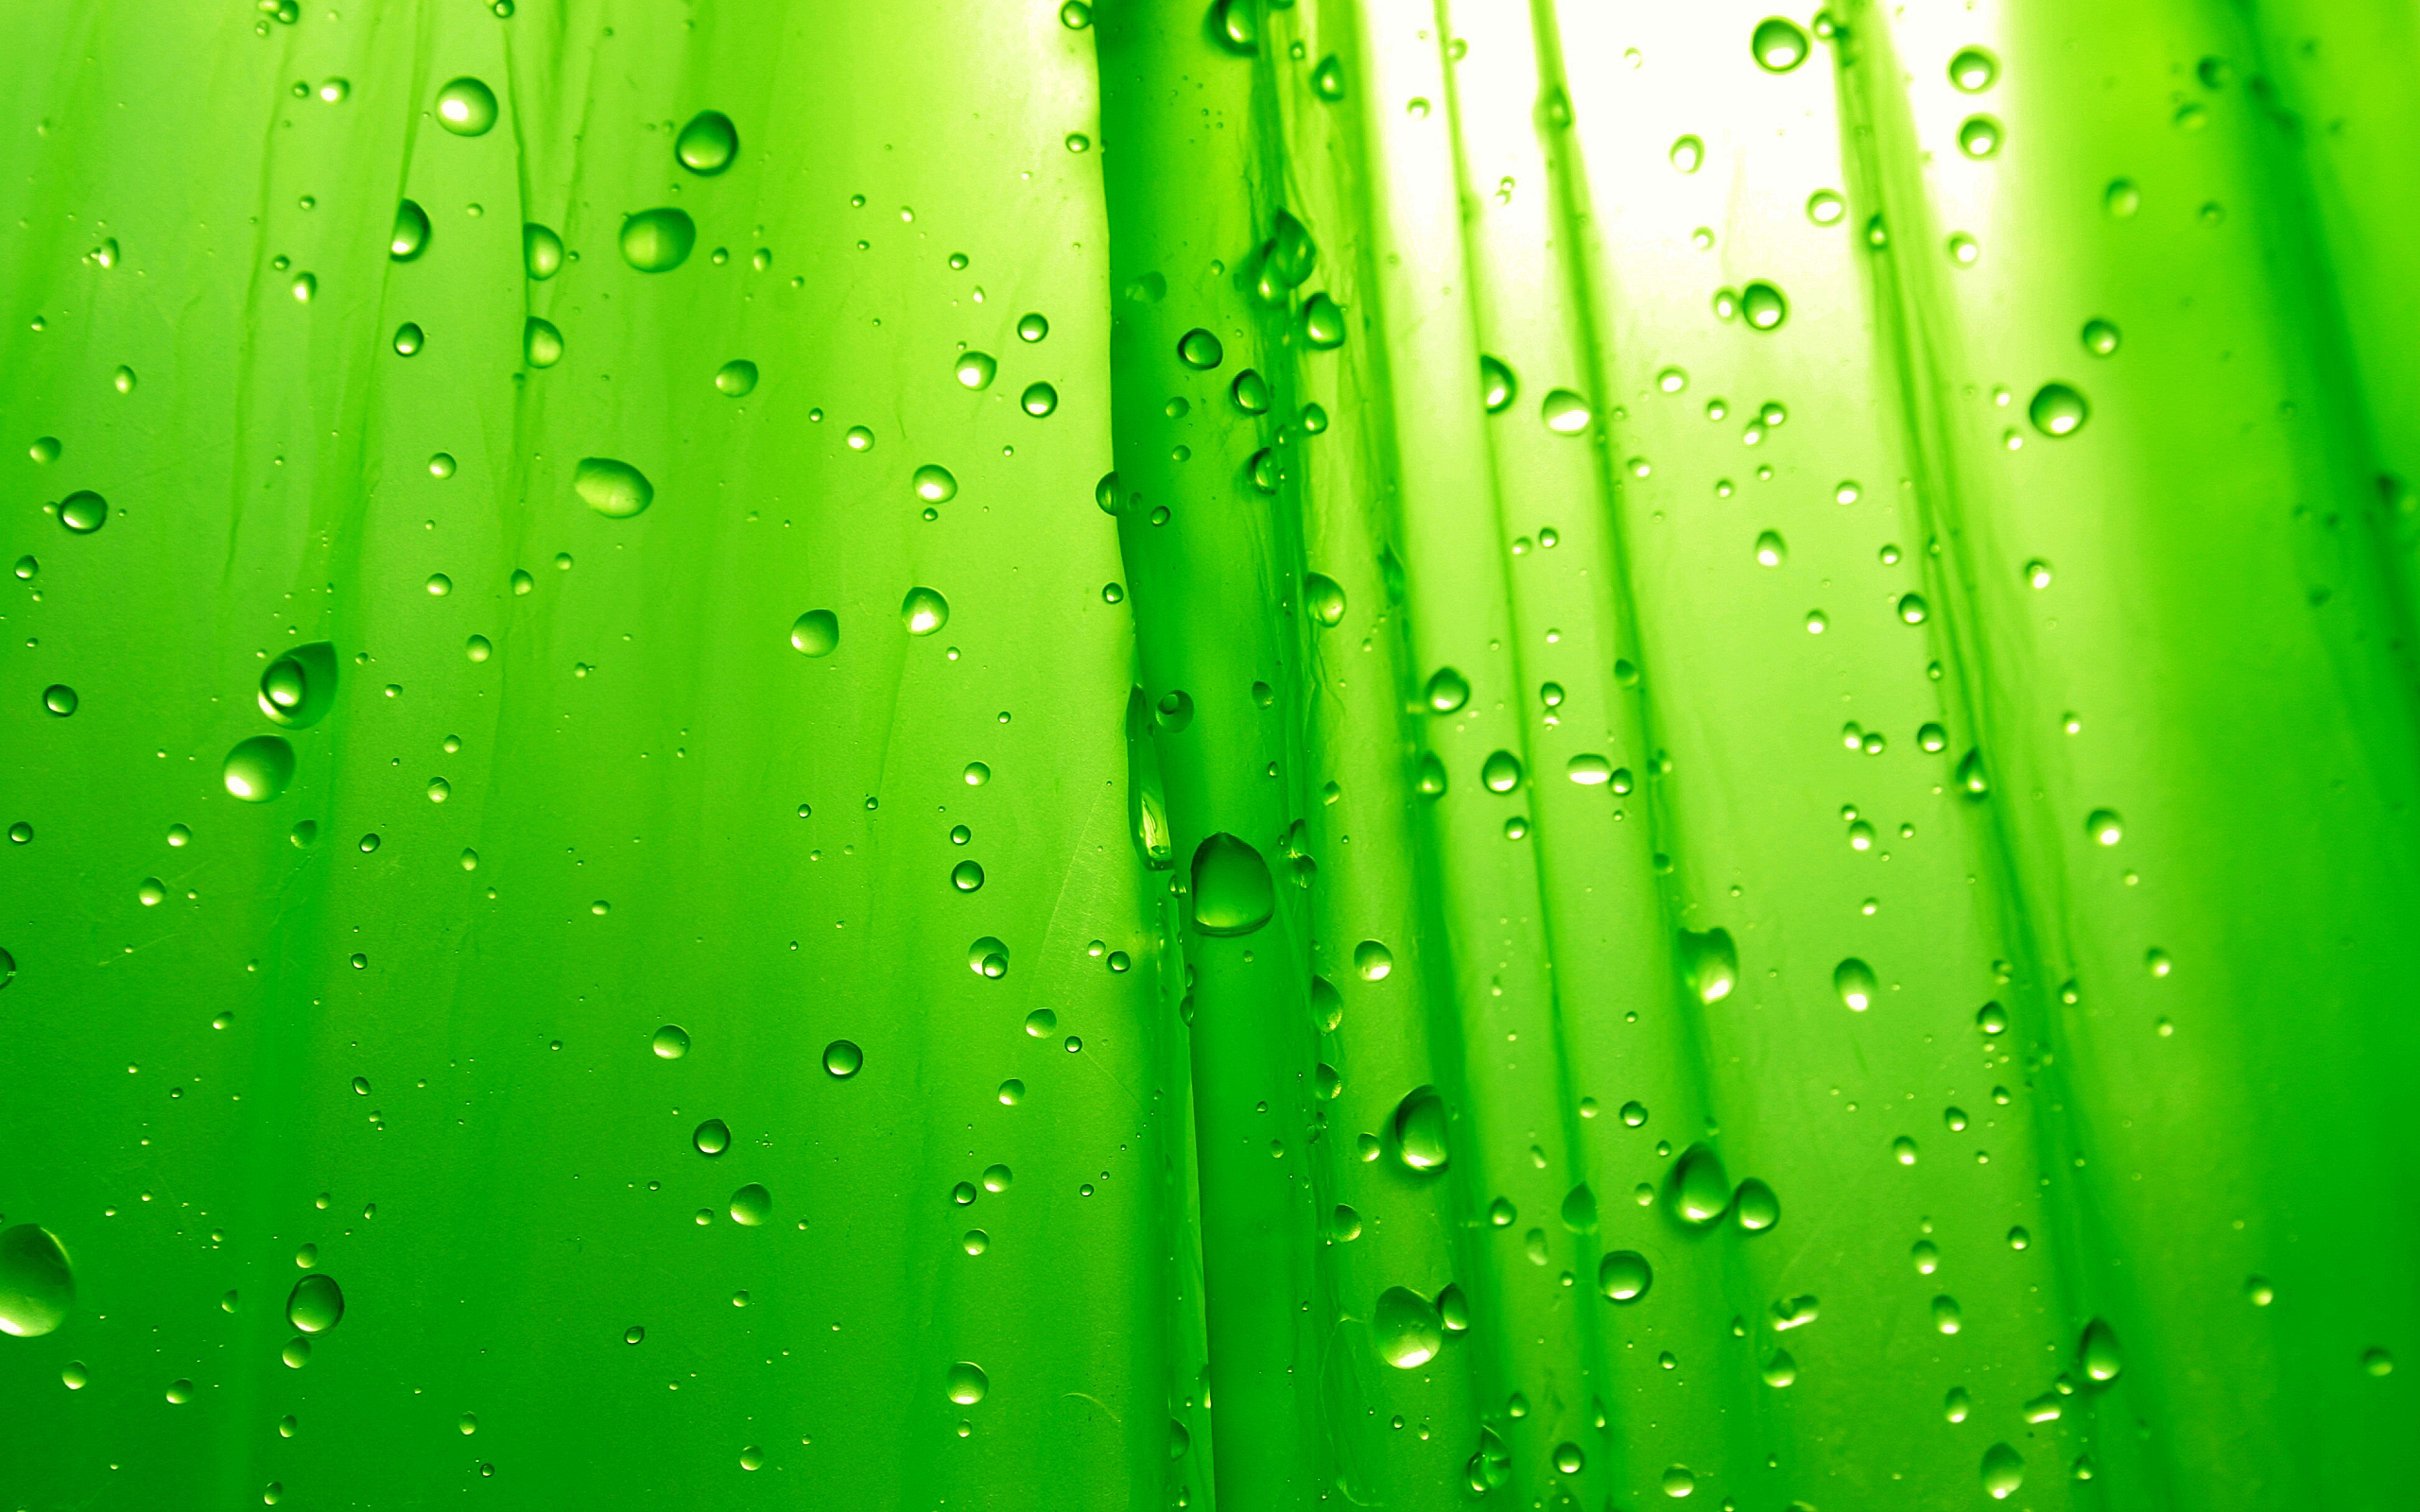 49 Hd Wallpaper Green On Wallpapersafari